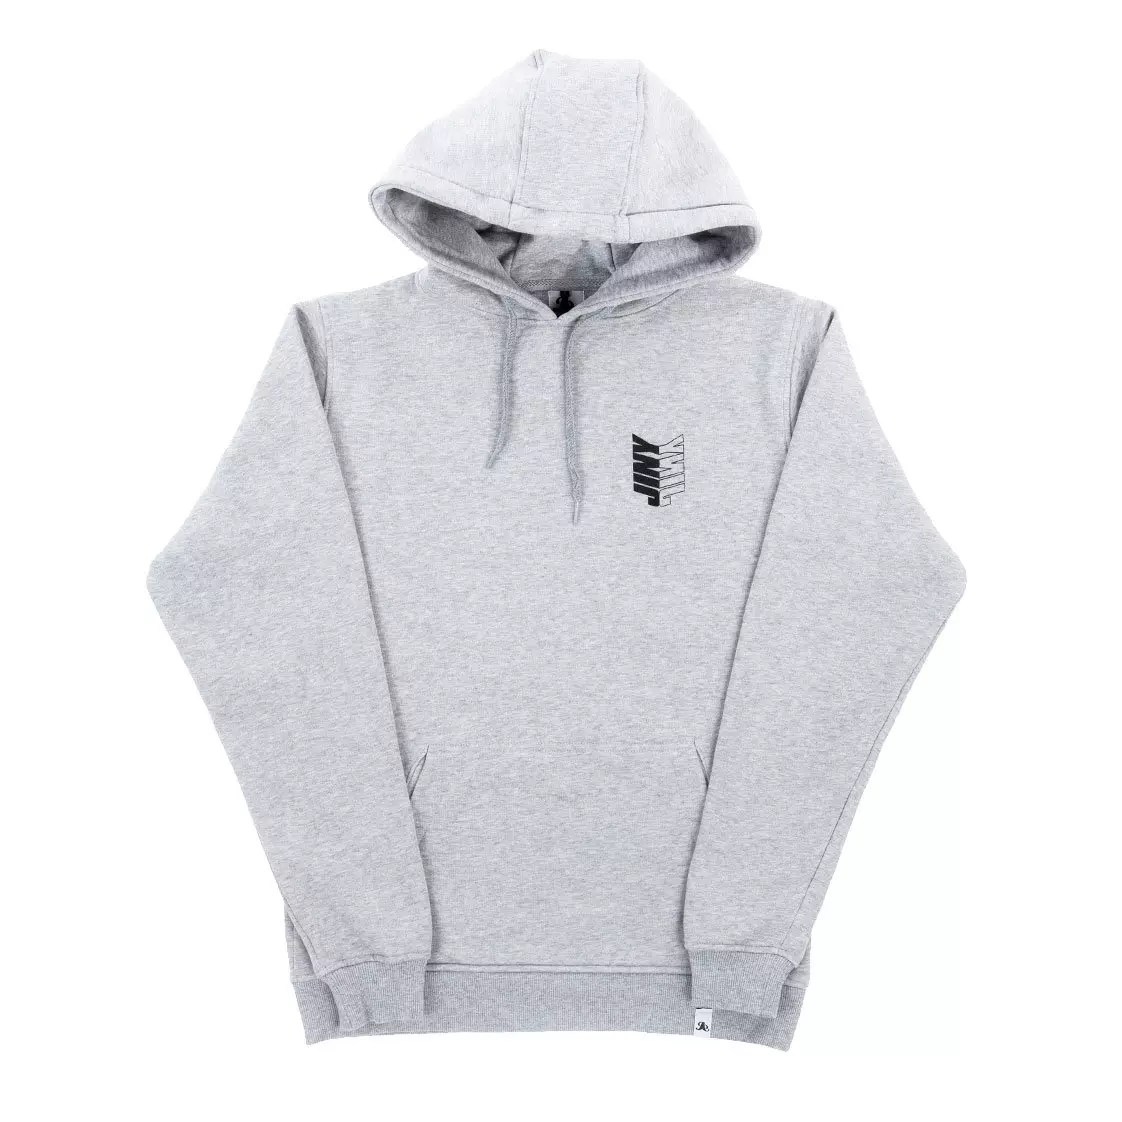 Jolly Industry DOUBLE JINY Hoodie